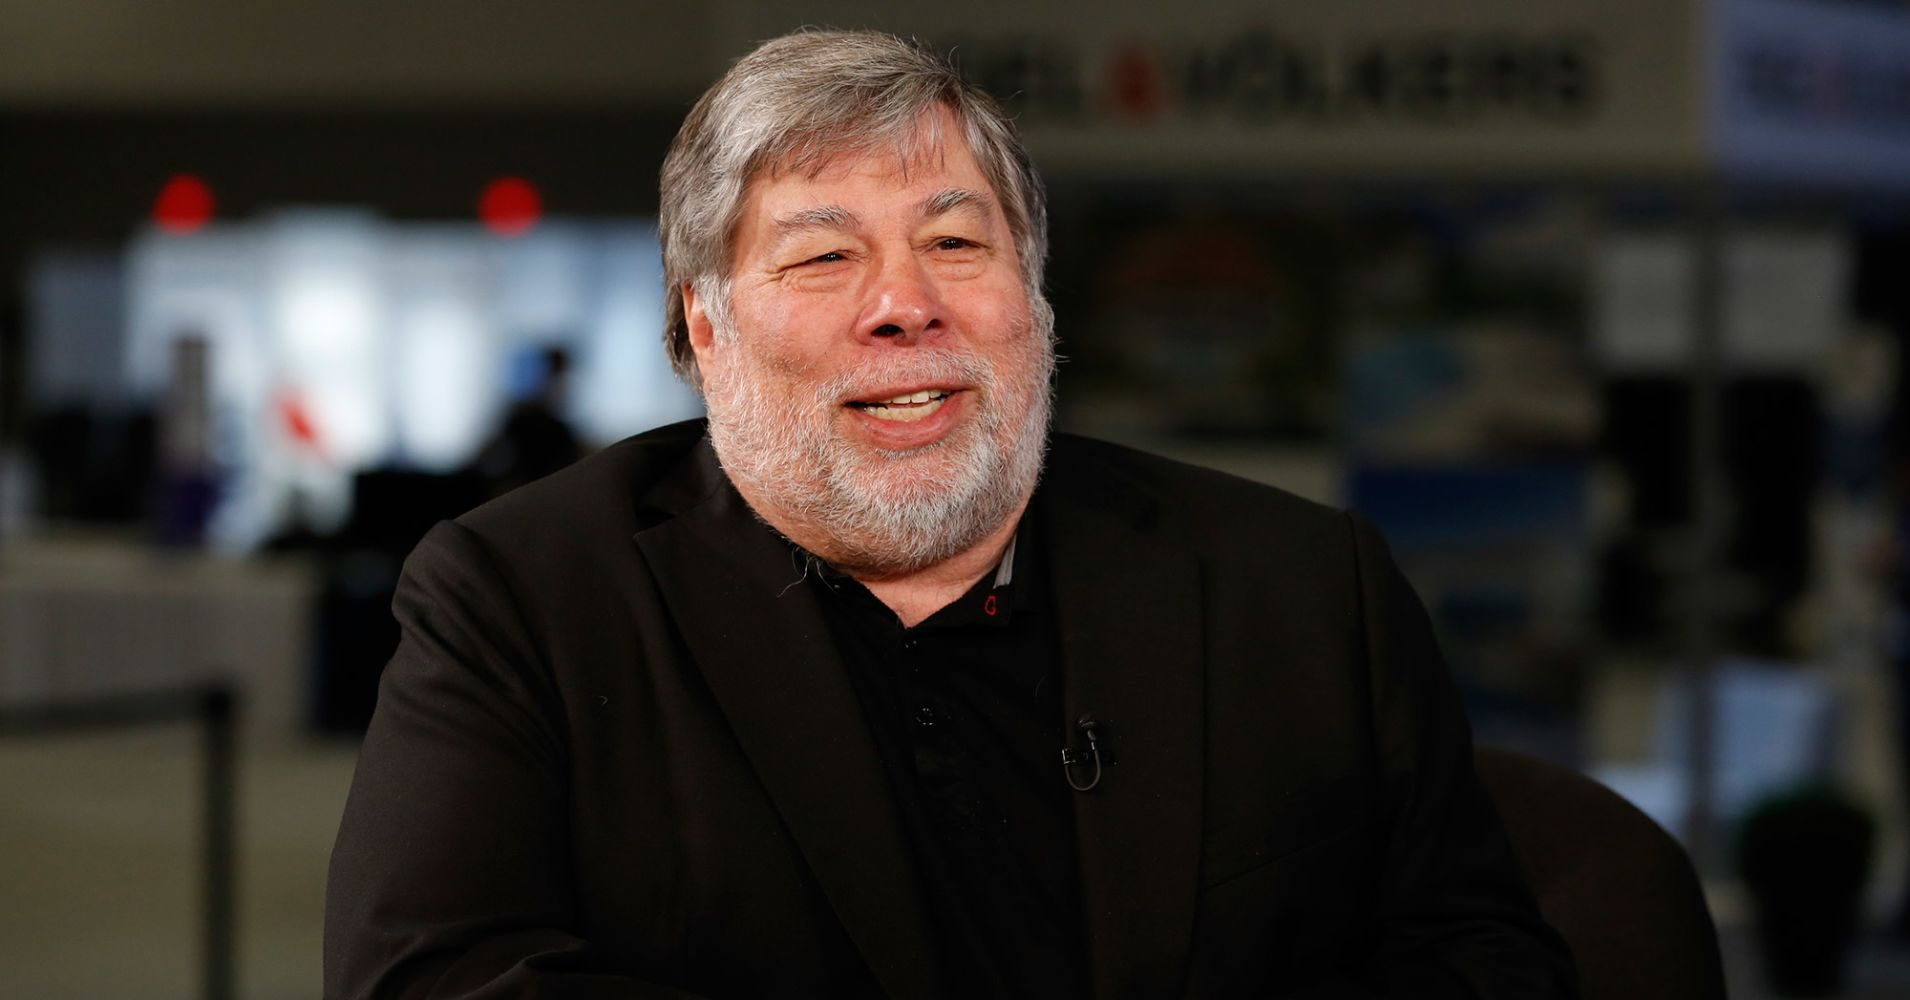 The wisdom of Steve Wozniak